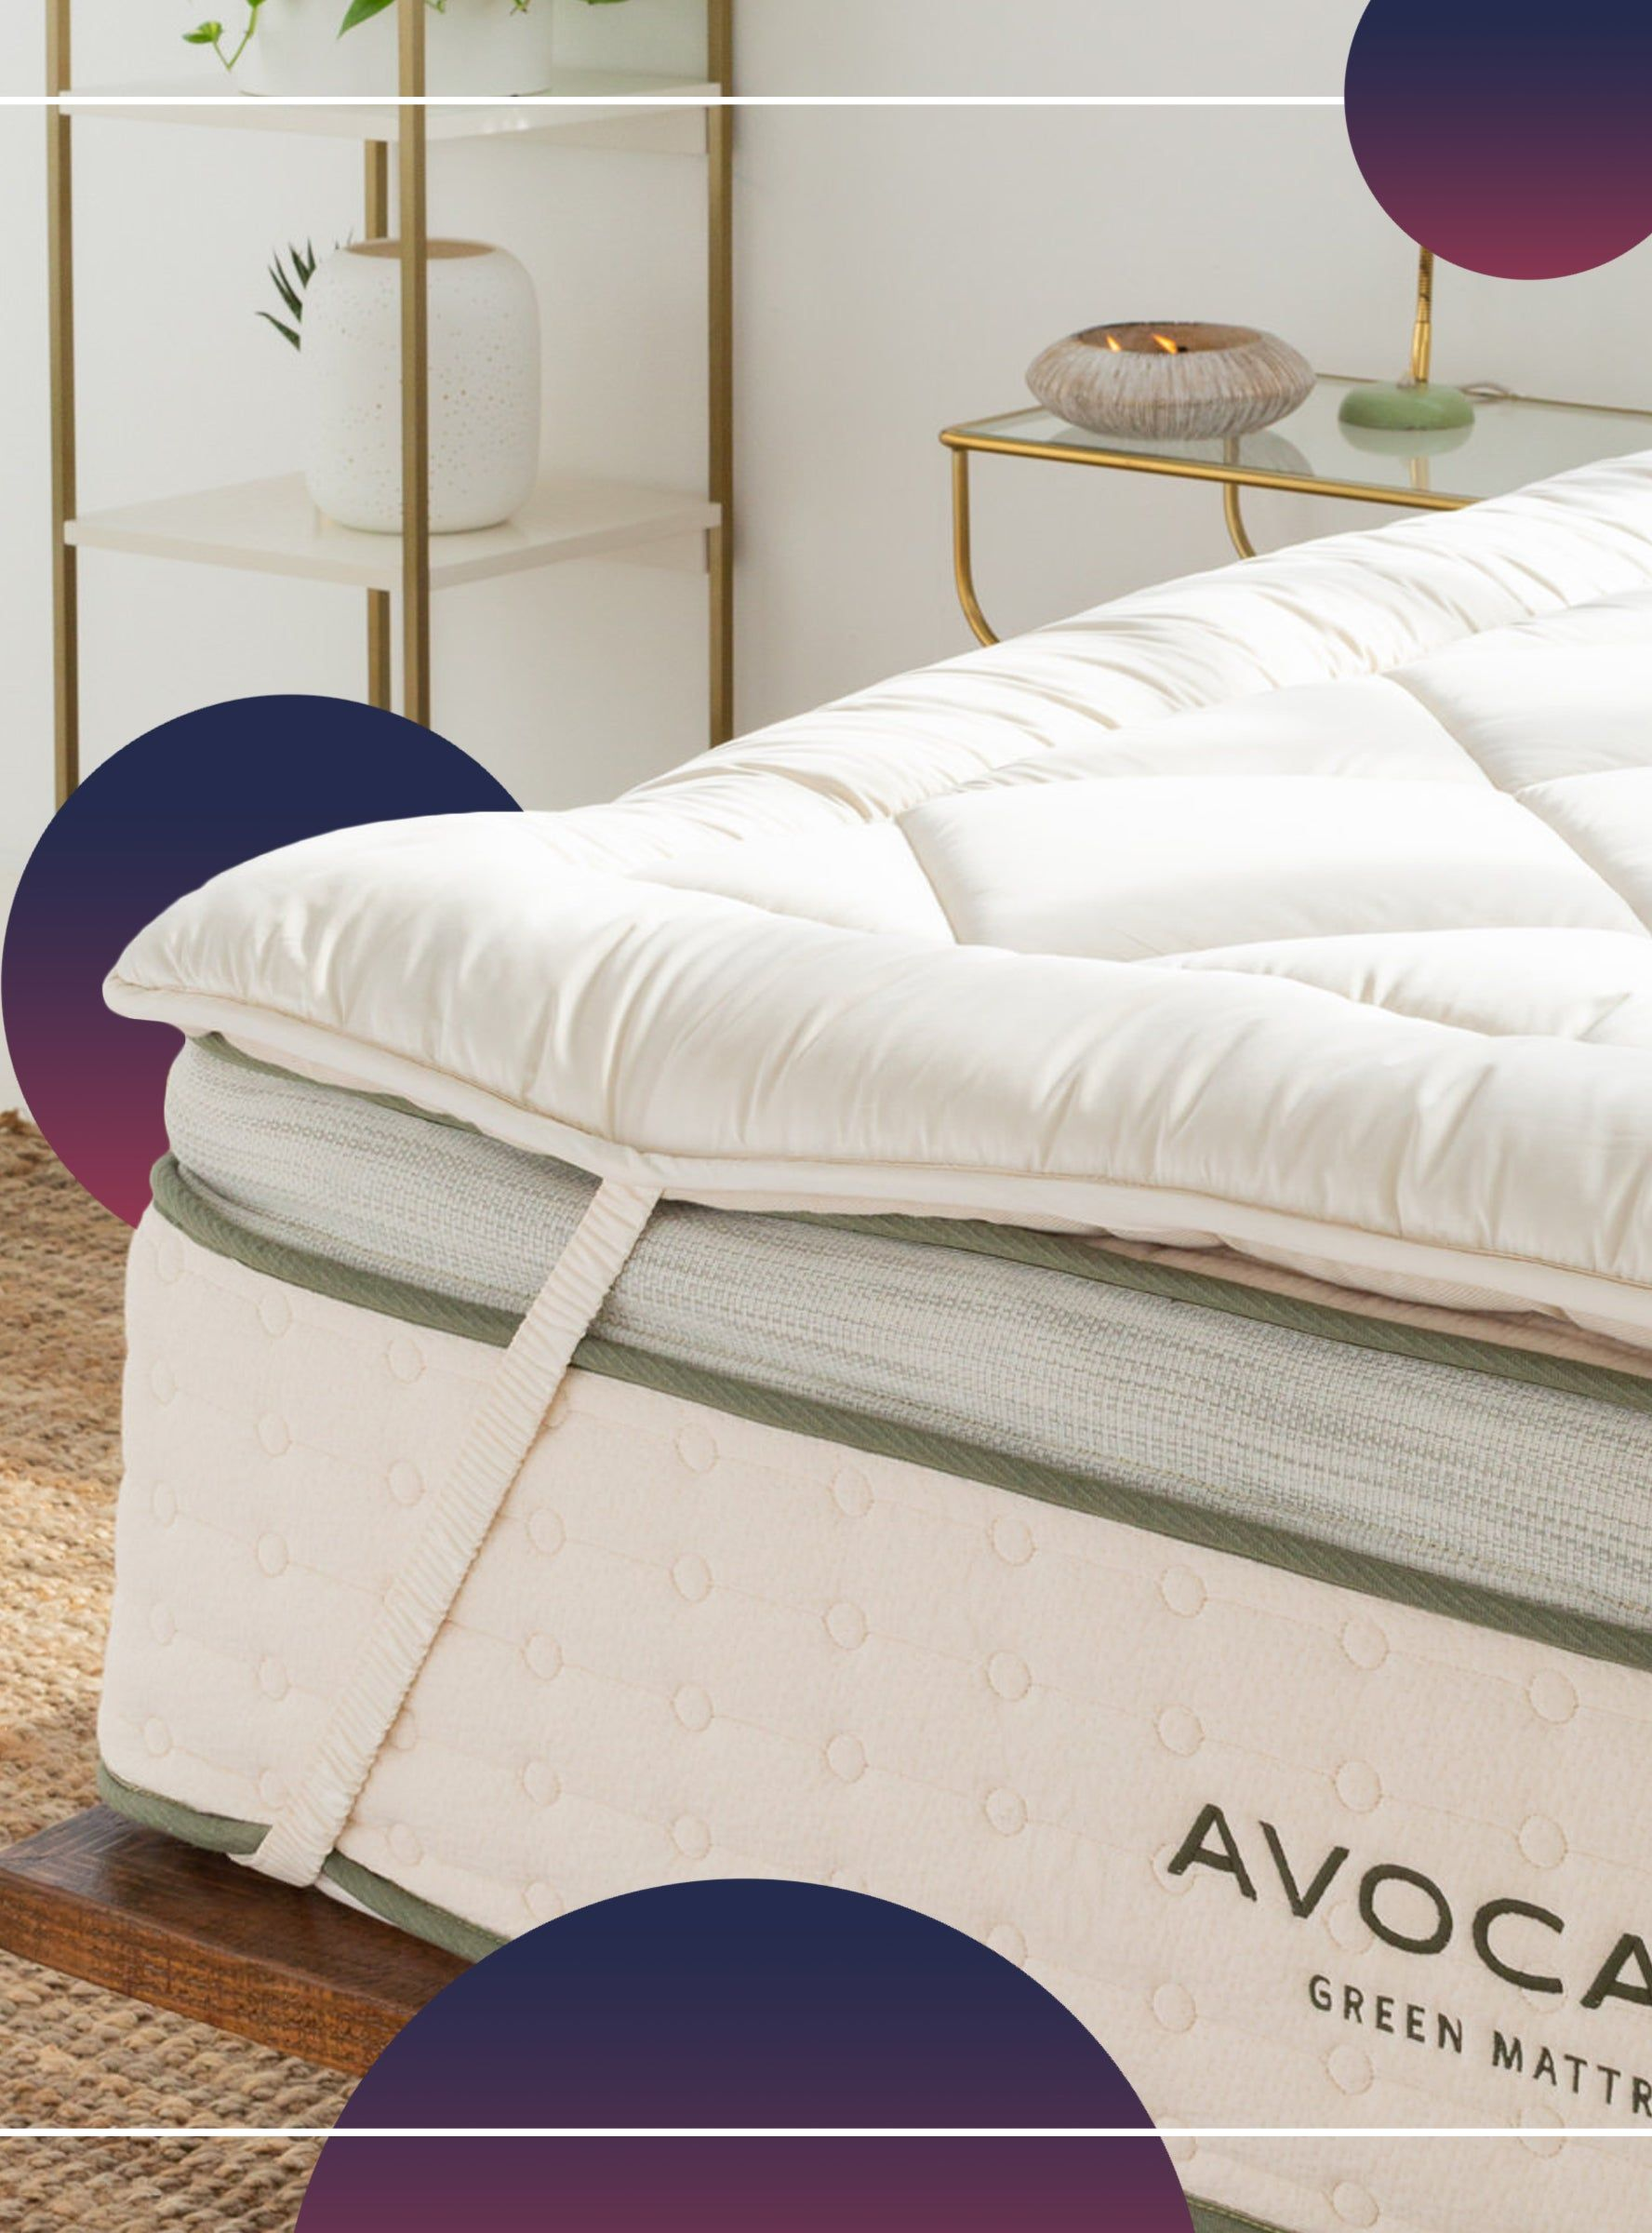 11 Mattress Toppers That Will Make The Earth Your Back Happy In 2021 Mattress Topper Eco Friendly Mattress Organic Mattresses